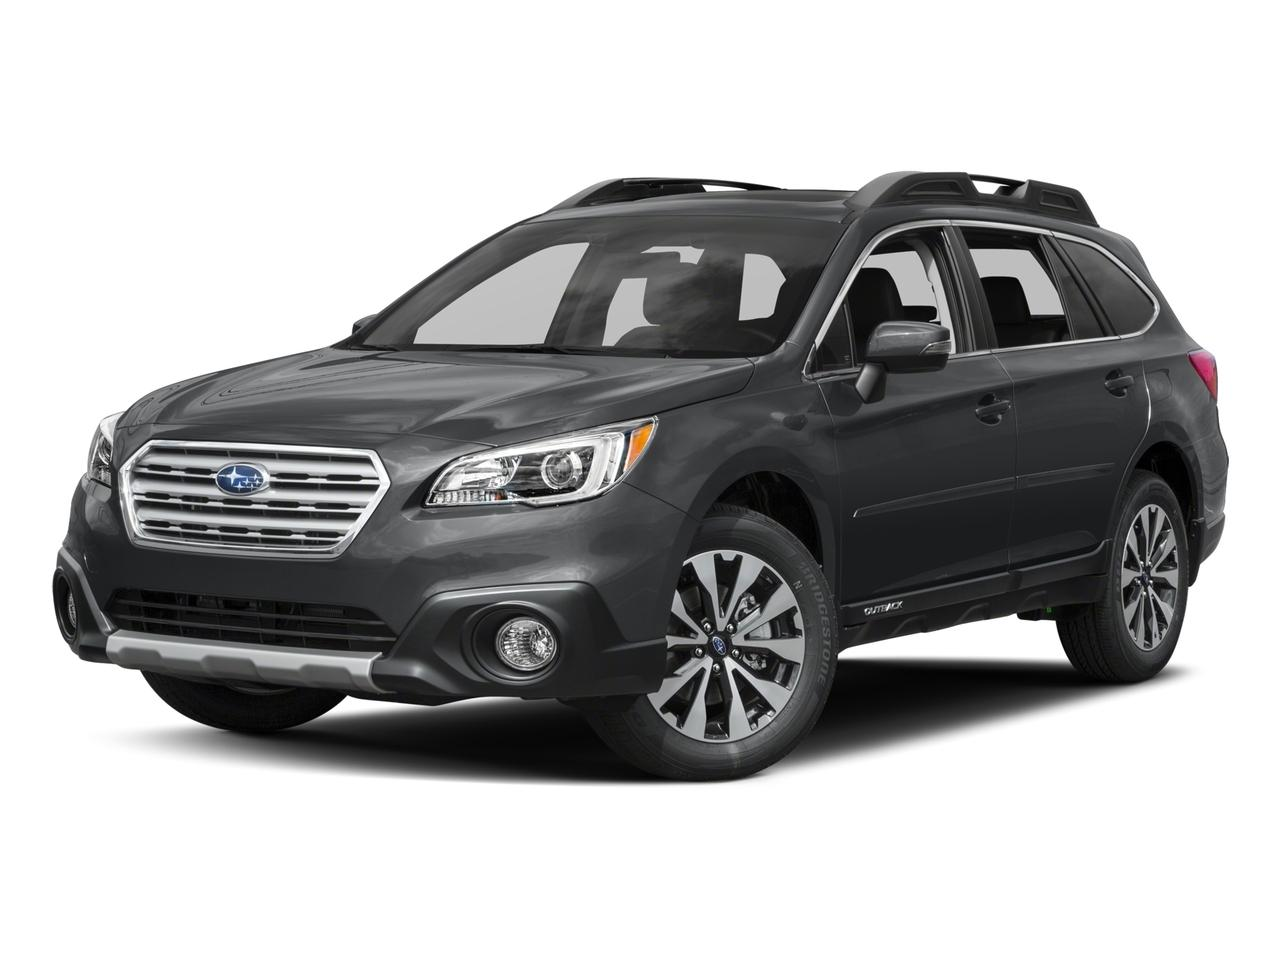 2017 Subaru Outback Vehicle Photo in Greensboro, NC 27405